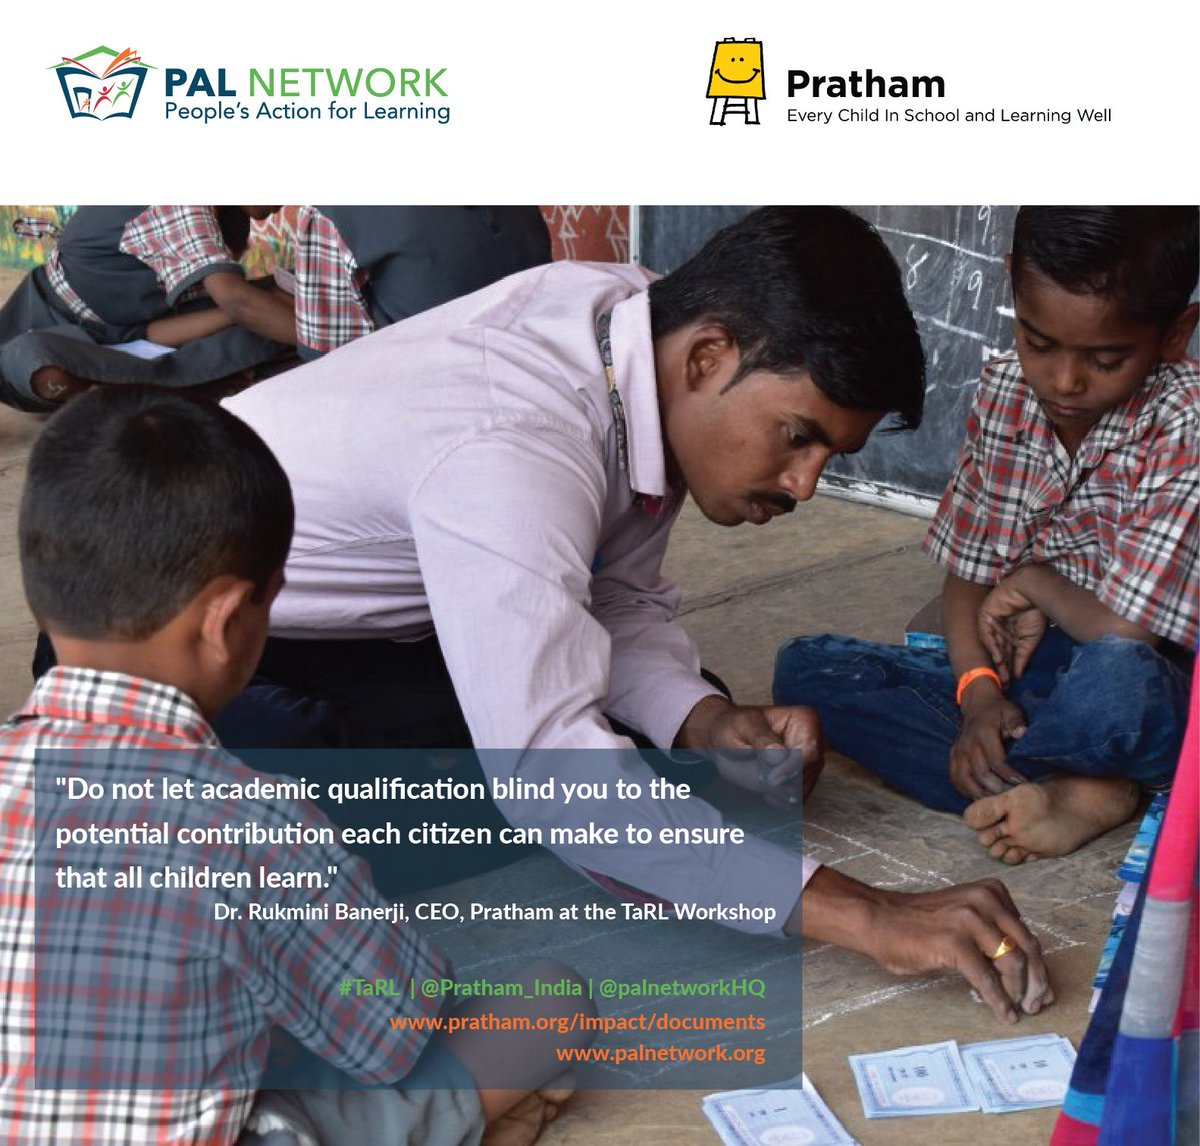 In @Pratham_India #TaRL program, regardless of #age or #grade, the starting point for instruction is where the #child is right now:  http:// bit.ly/2icNwEp  &nbsp;  <br>http://pic.twitter.com/gDtjvulXbk